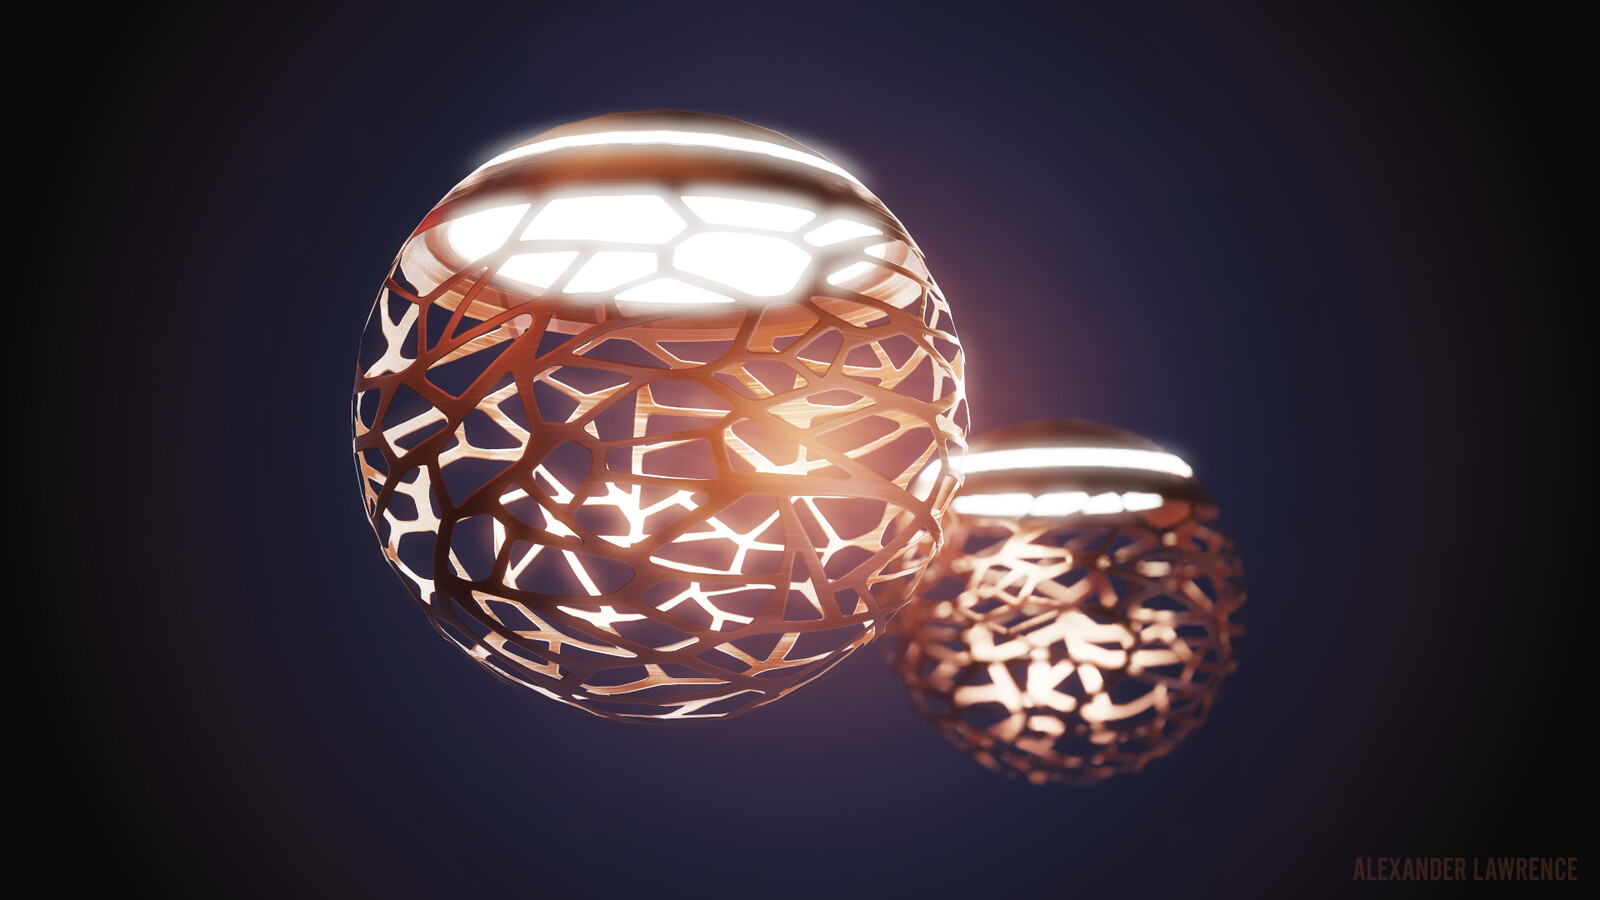 Floating lamps beauty shot (rendered in Marmoset Toolbag)